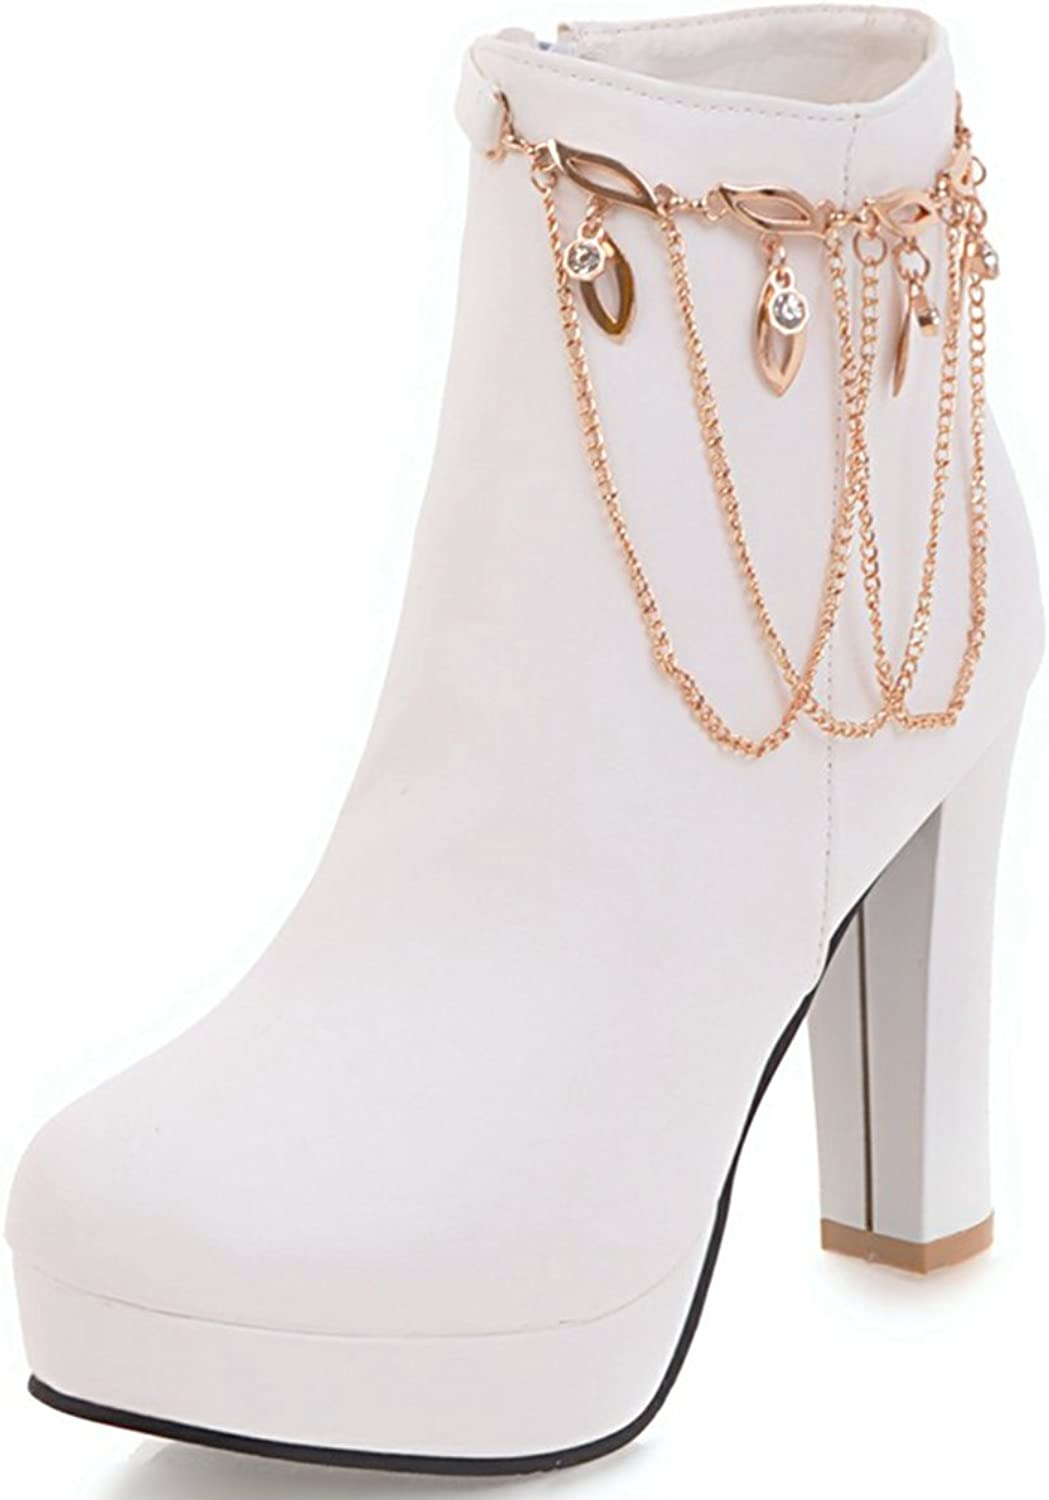 DoraTasia Women's Sexy Pearls Metal Pendant Platform Pointed Toe Mid Chunky Heel Ankle Boots